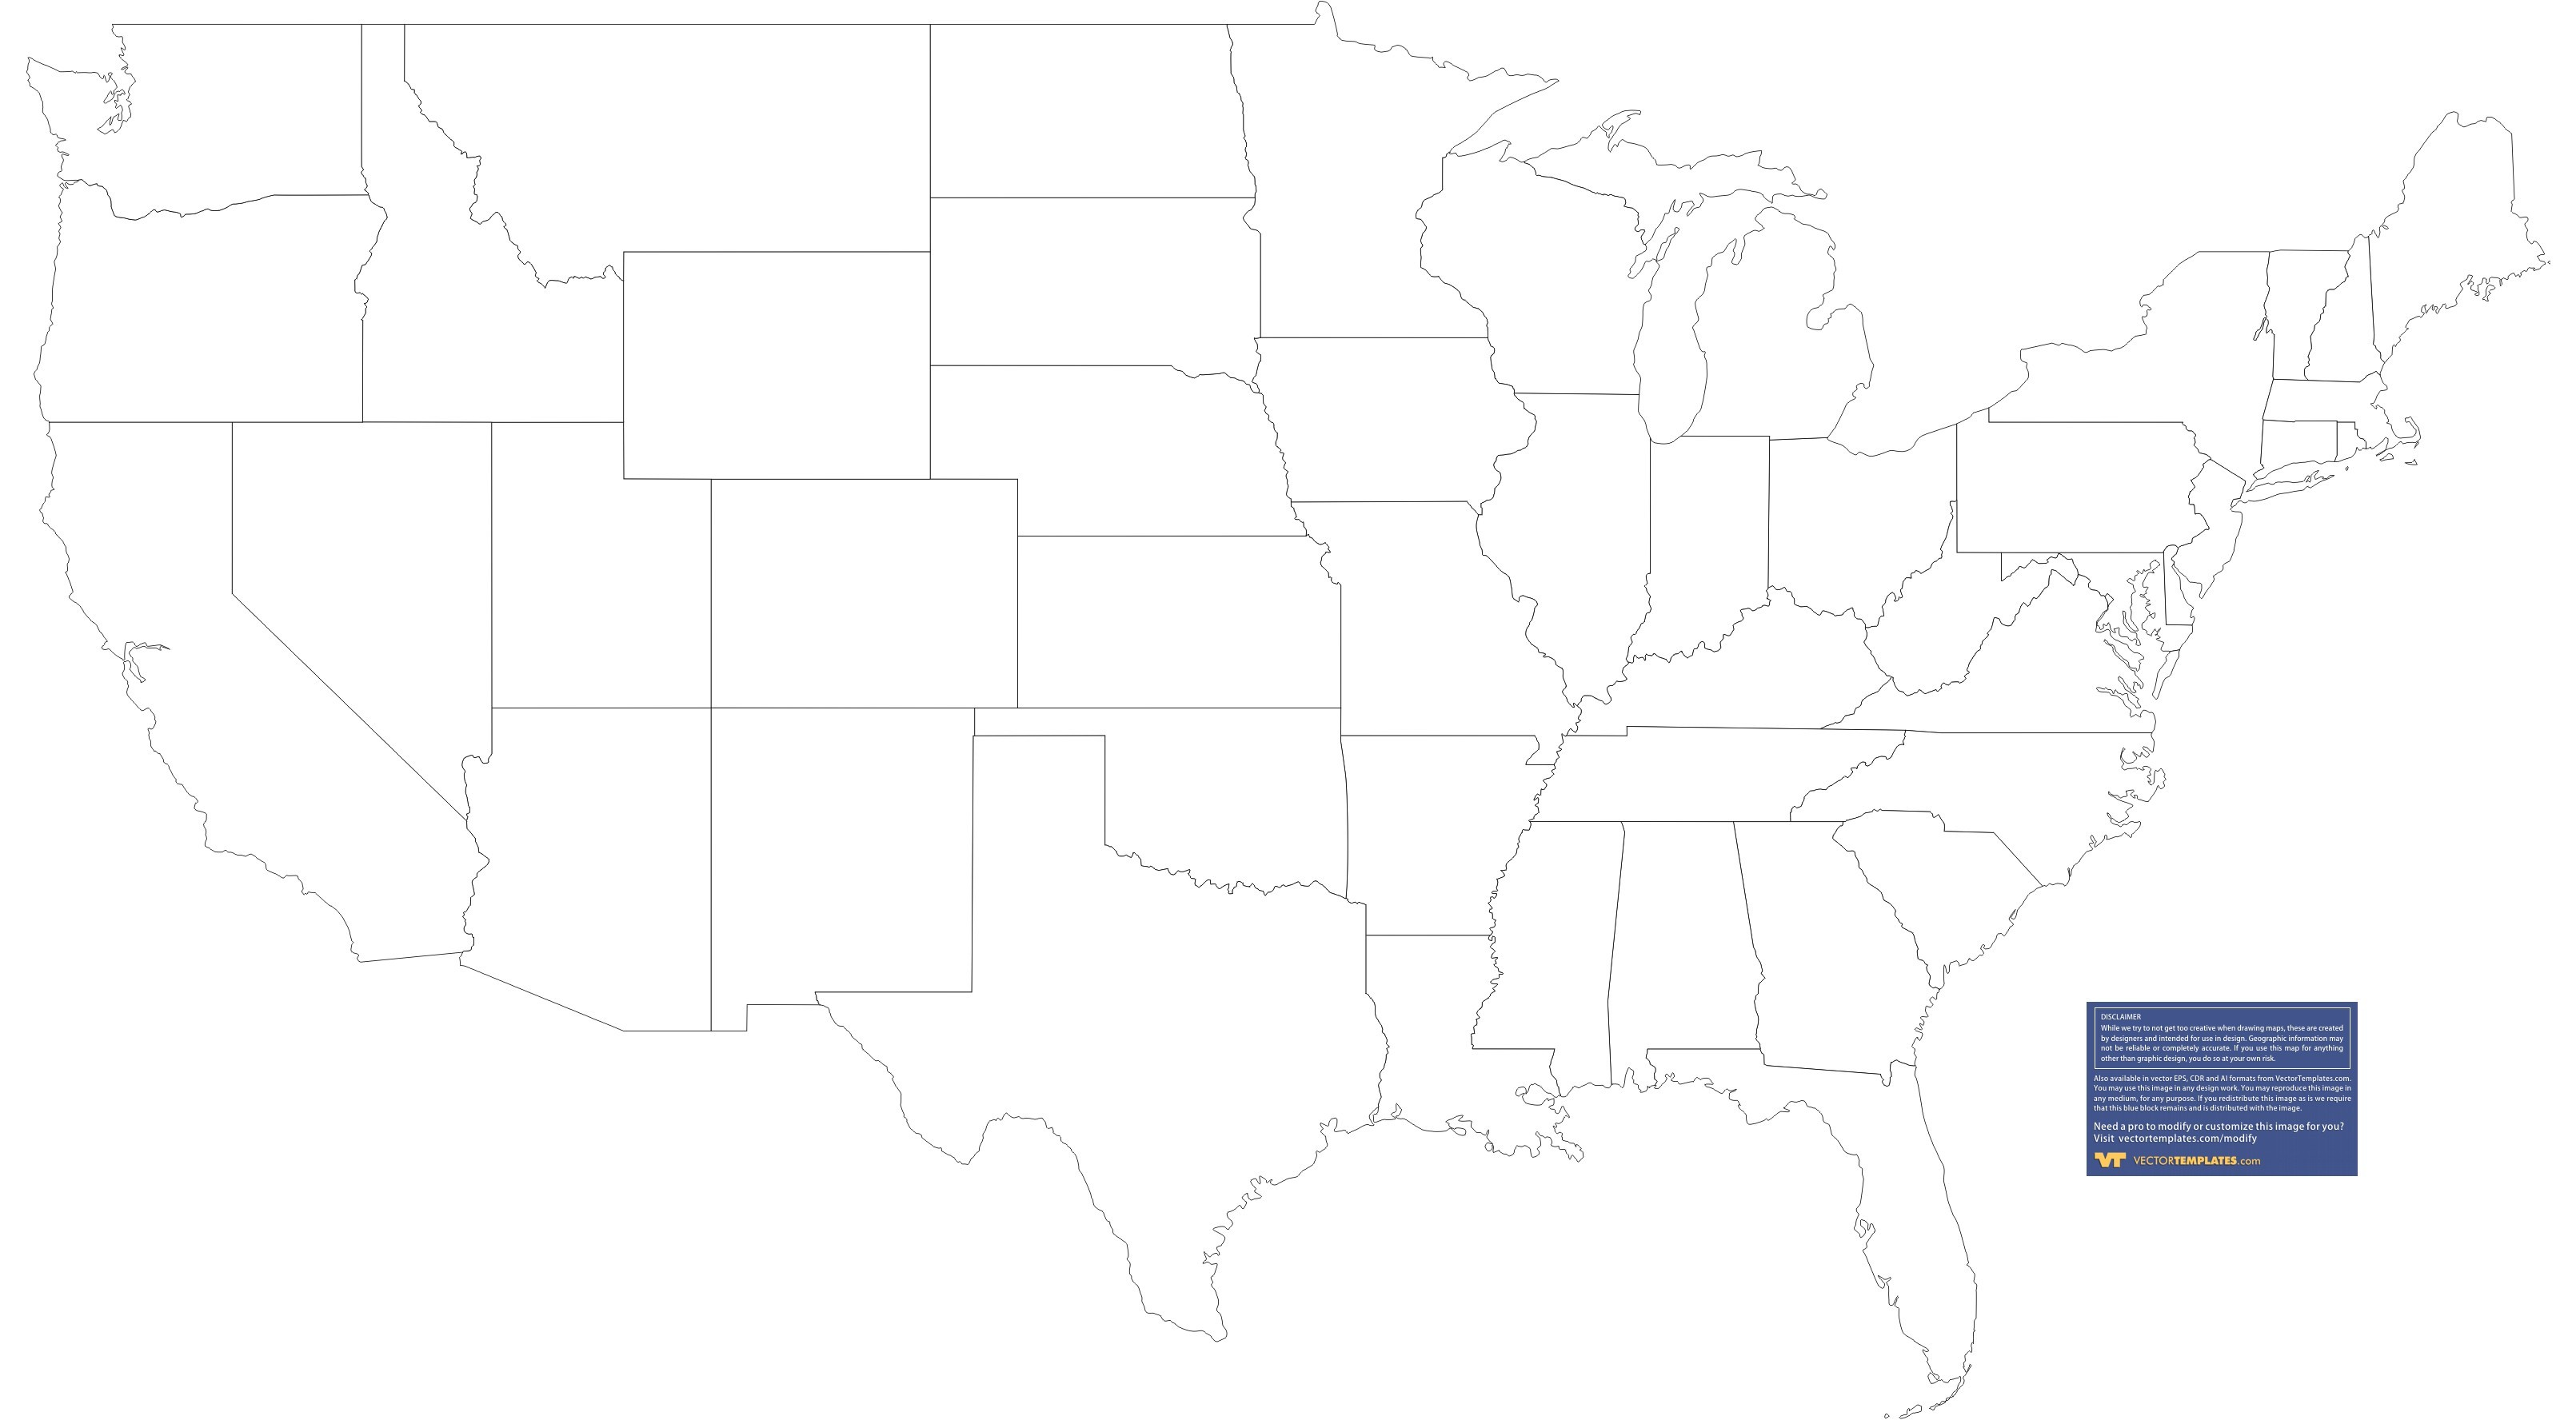 Blank Us Map With State Outlines on